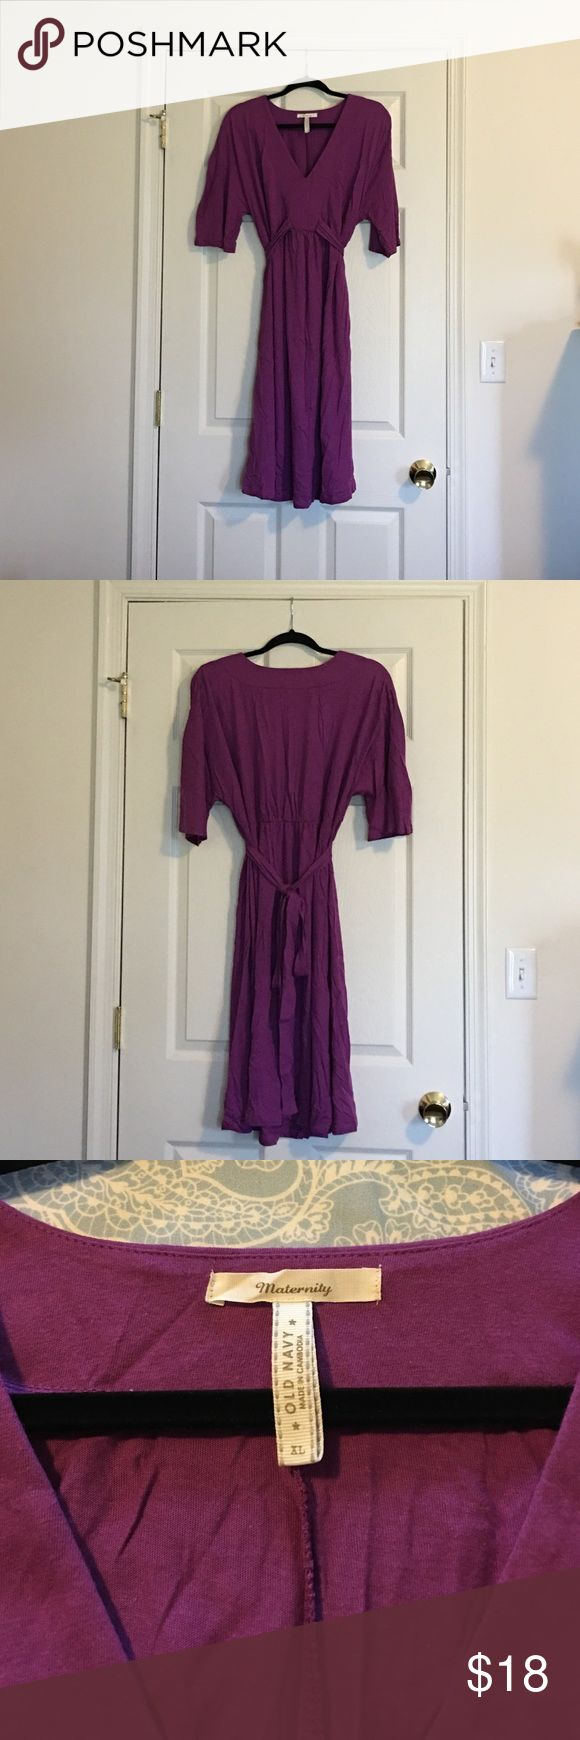 Purple Maternity Dress Old Navy Maternity purple cotton dress Old Navy Maternity Dresses